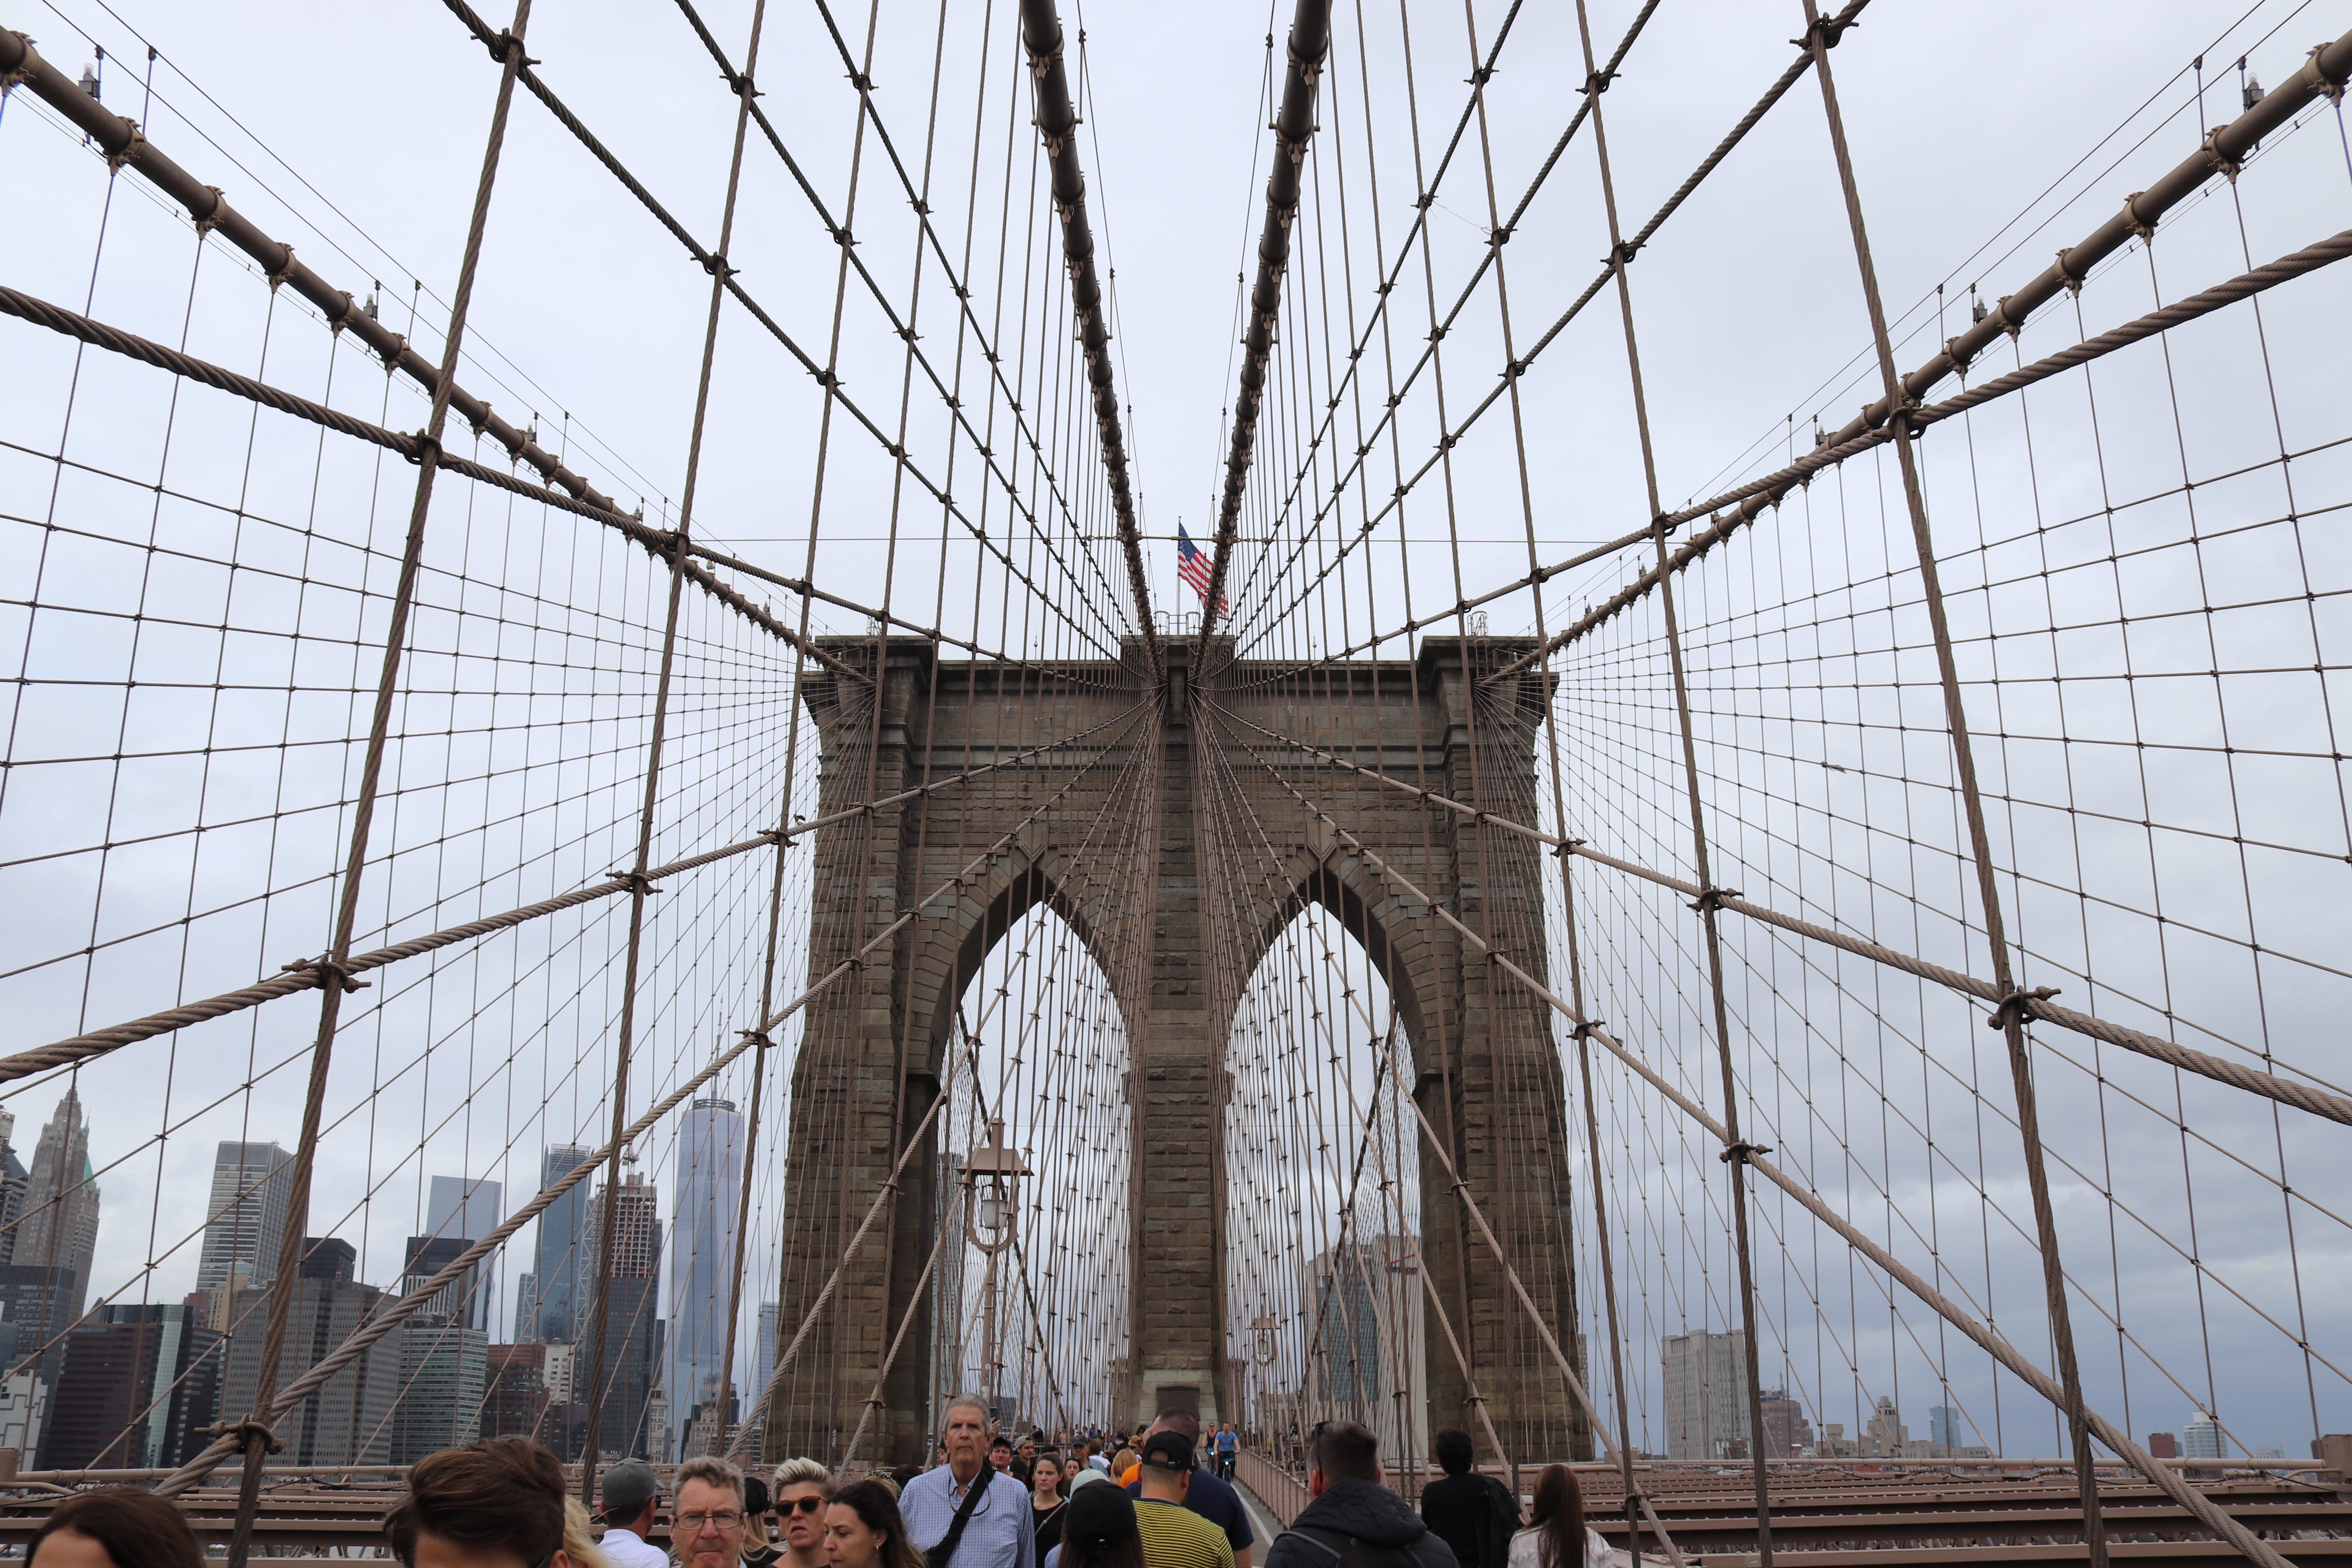 A view of Brooklyn Bridge's western pillar supported by iron suspension cables.